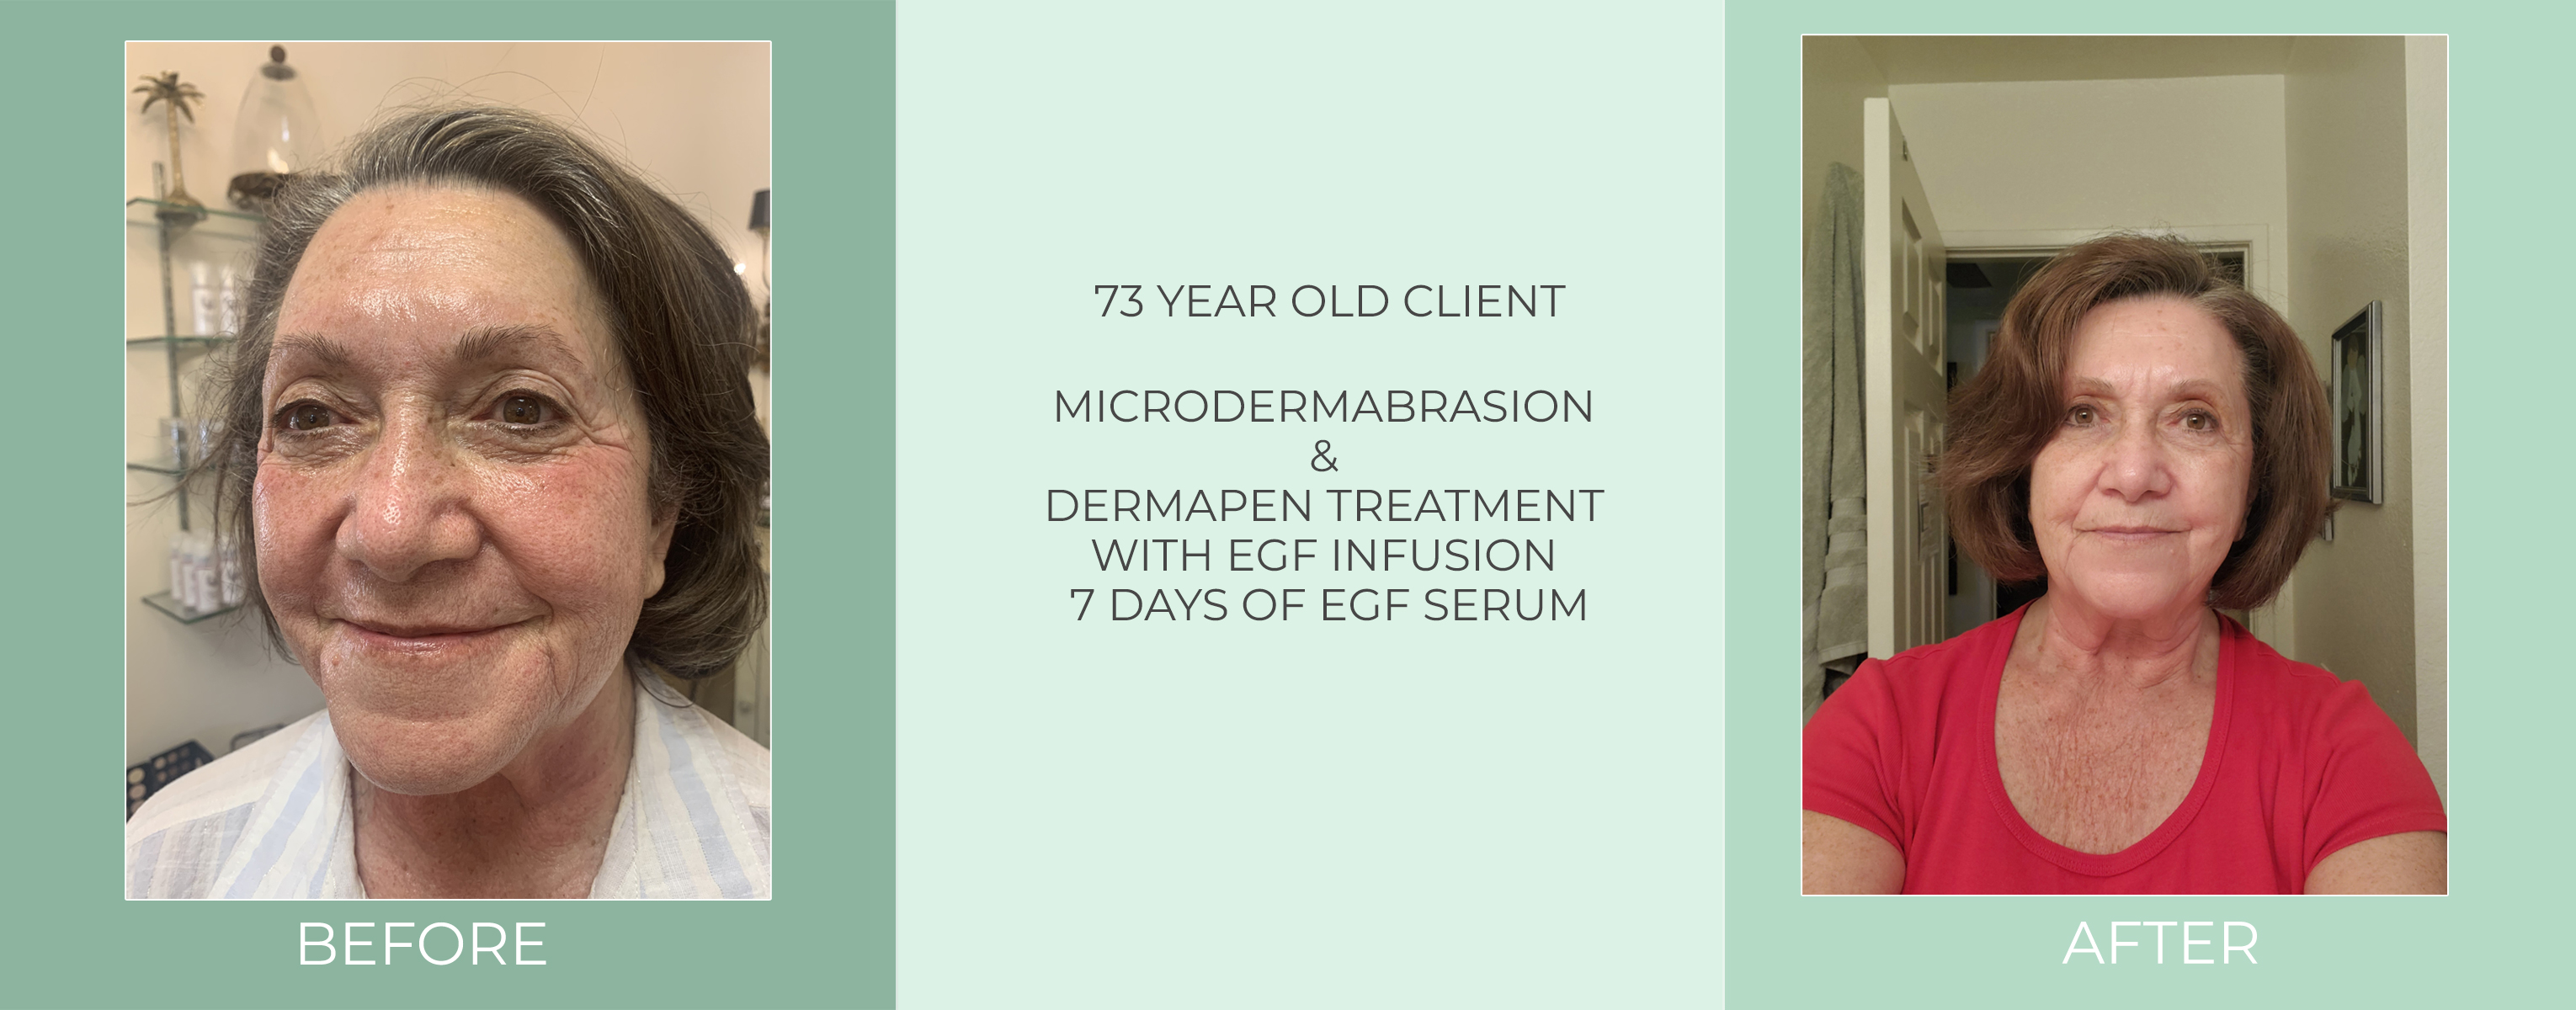 73-year-old-client-microdermabrasion-dermapen-treatment-with-egf-infusion-7-days-of-egf-serum-before-and-after.jpg